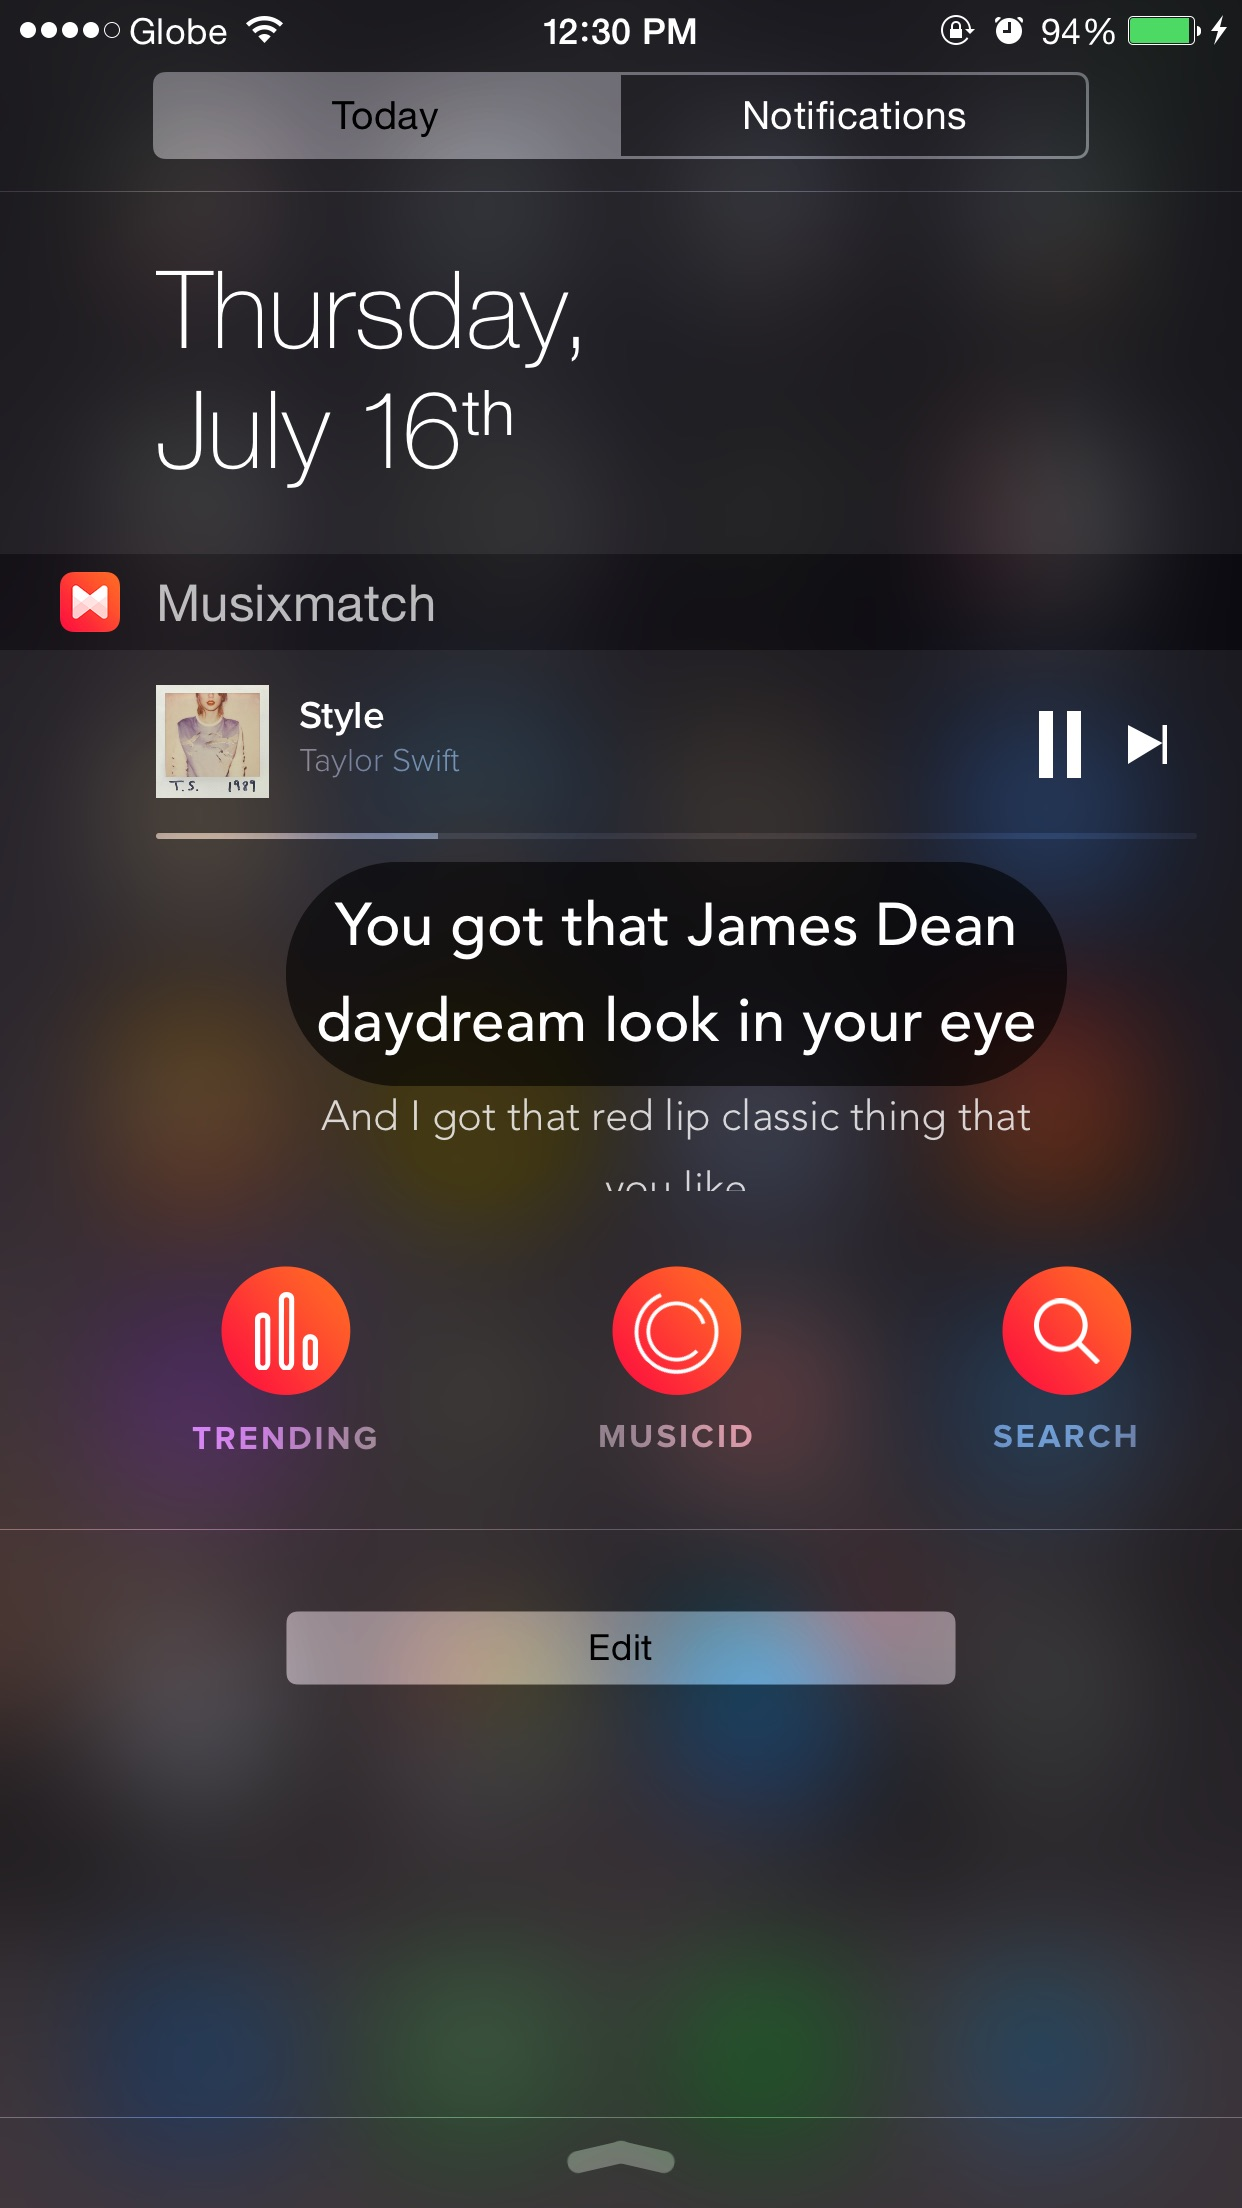 Previously, Musixmatch's Today widget had buttons for quickly accessing certain app features.